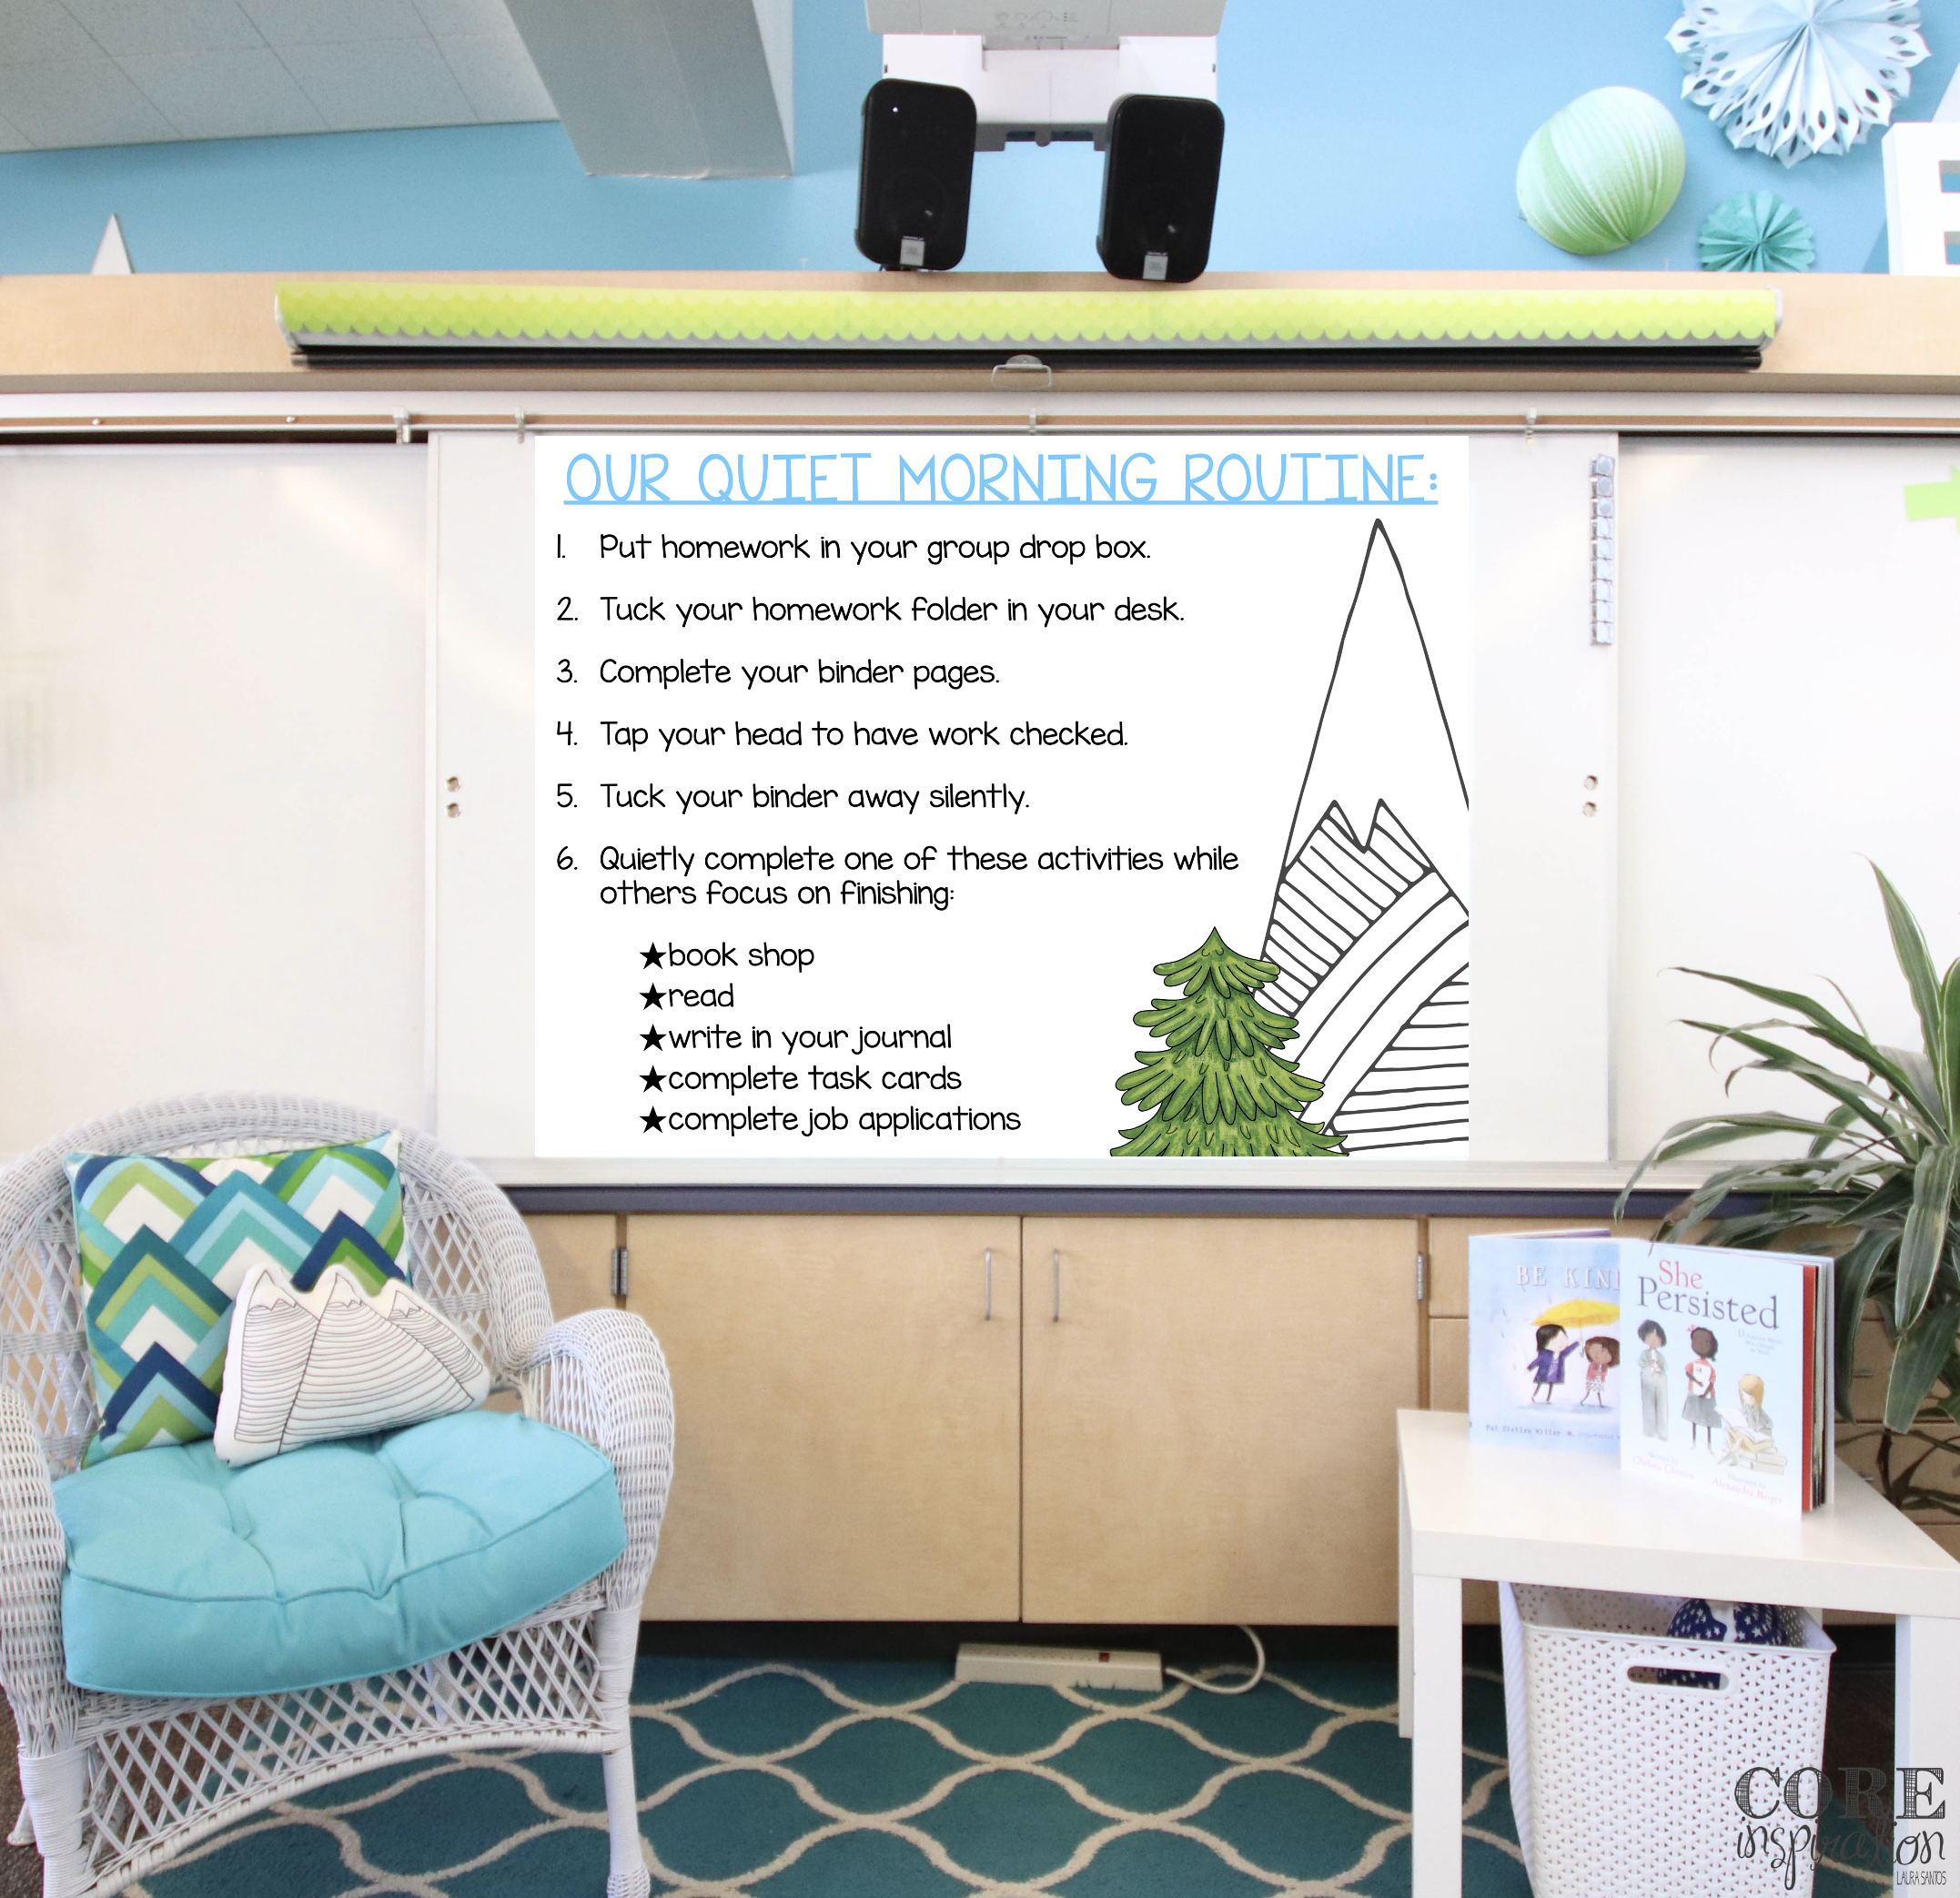 """Classroom whiteboard with """"Our Quiet Morning Routine"""" steps for students to follow projected on the board."""